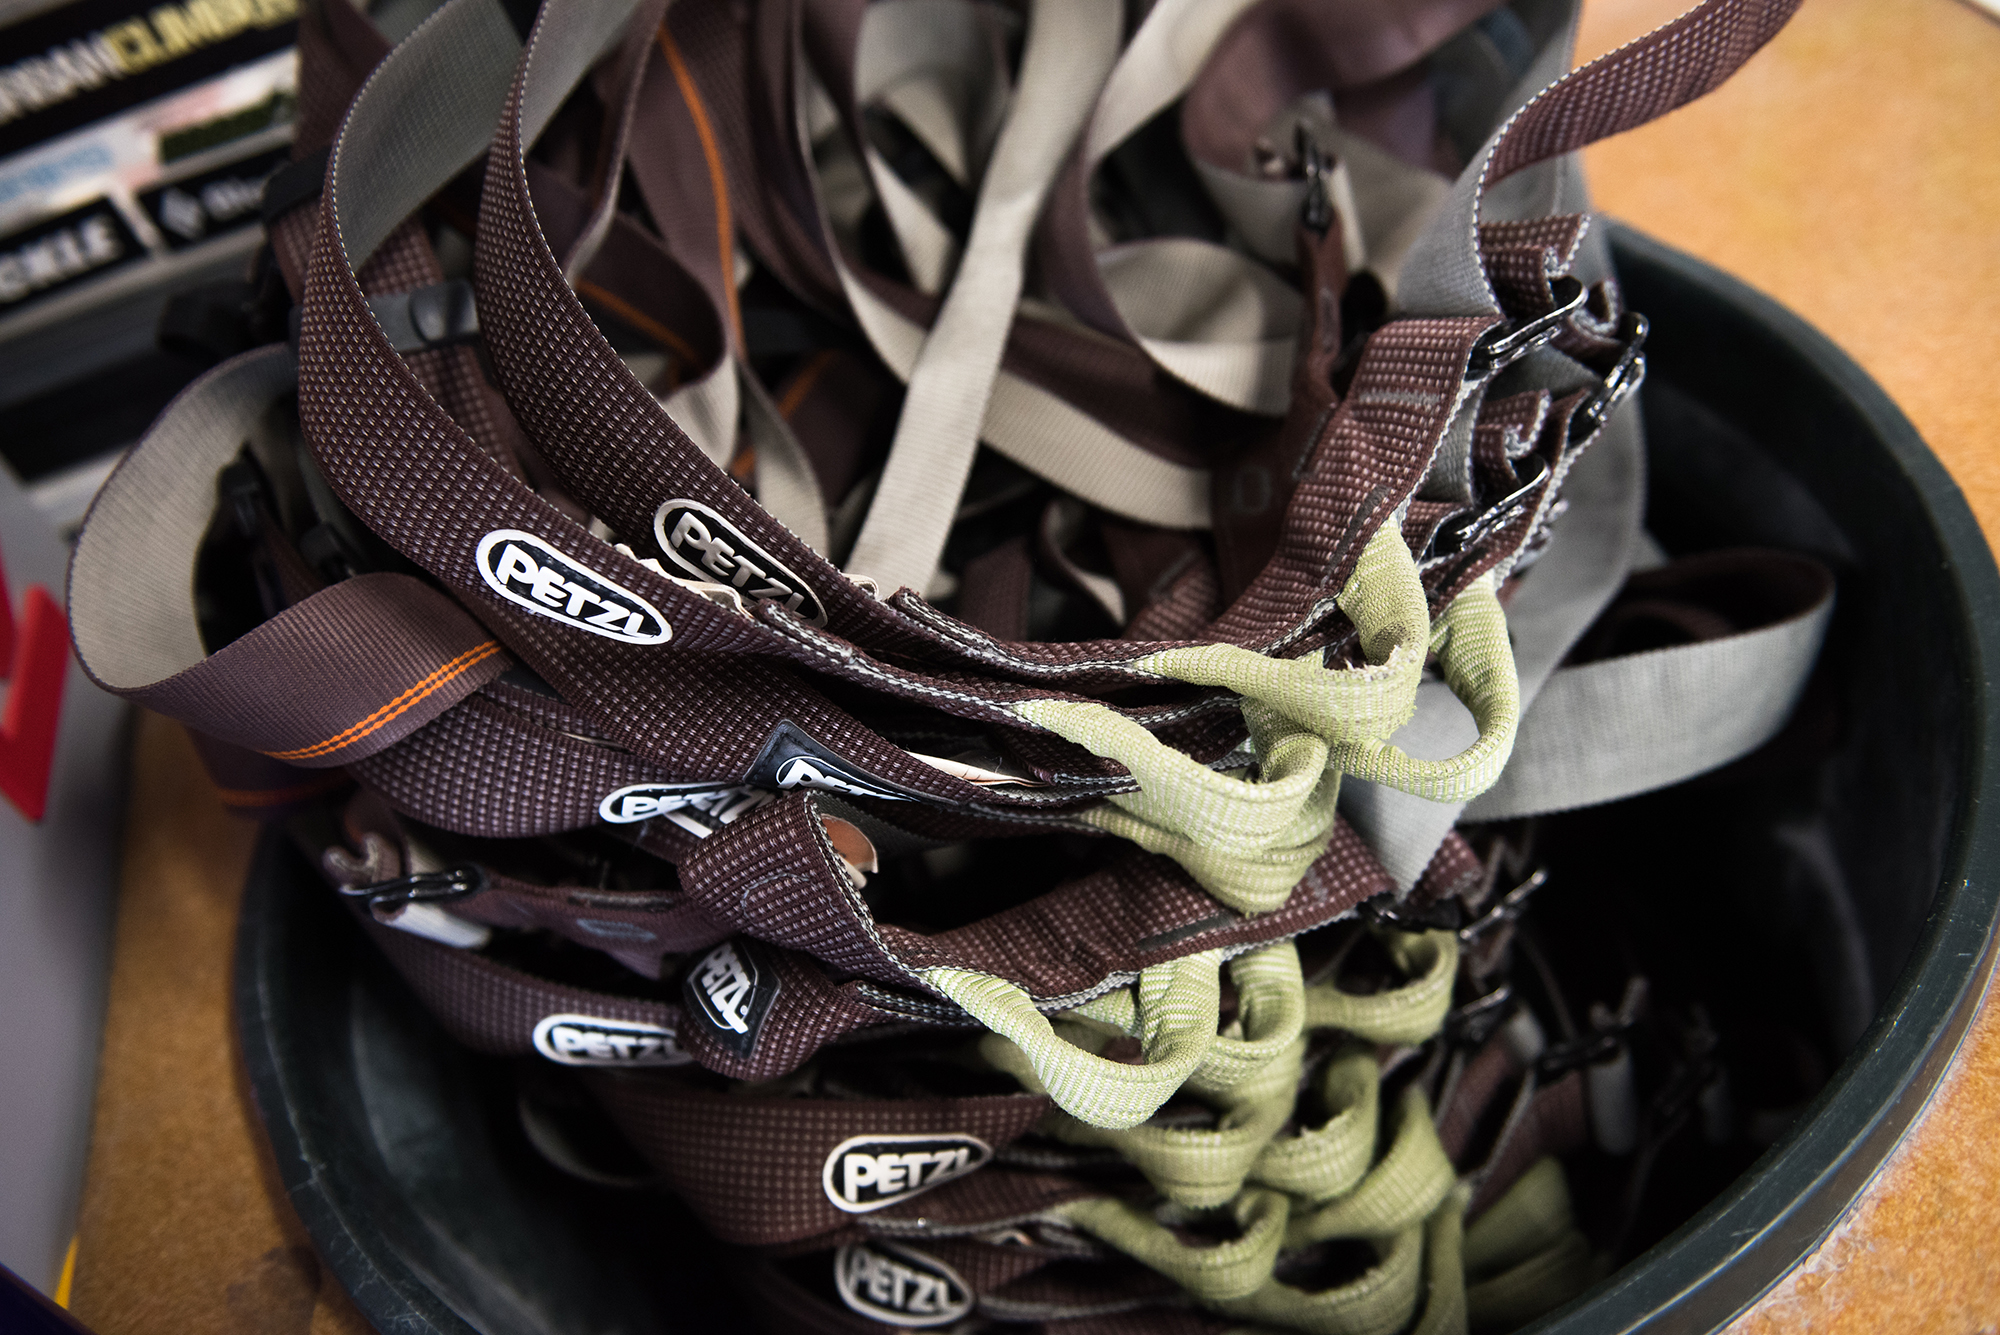 harness - This nifty wearable goes around your waist and keeps you off the ground. Harnesses are required for autobelays and any type of roped climbing. Rent one for $4 (or part of the rental package for $10) or get your own in our gear shop.